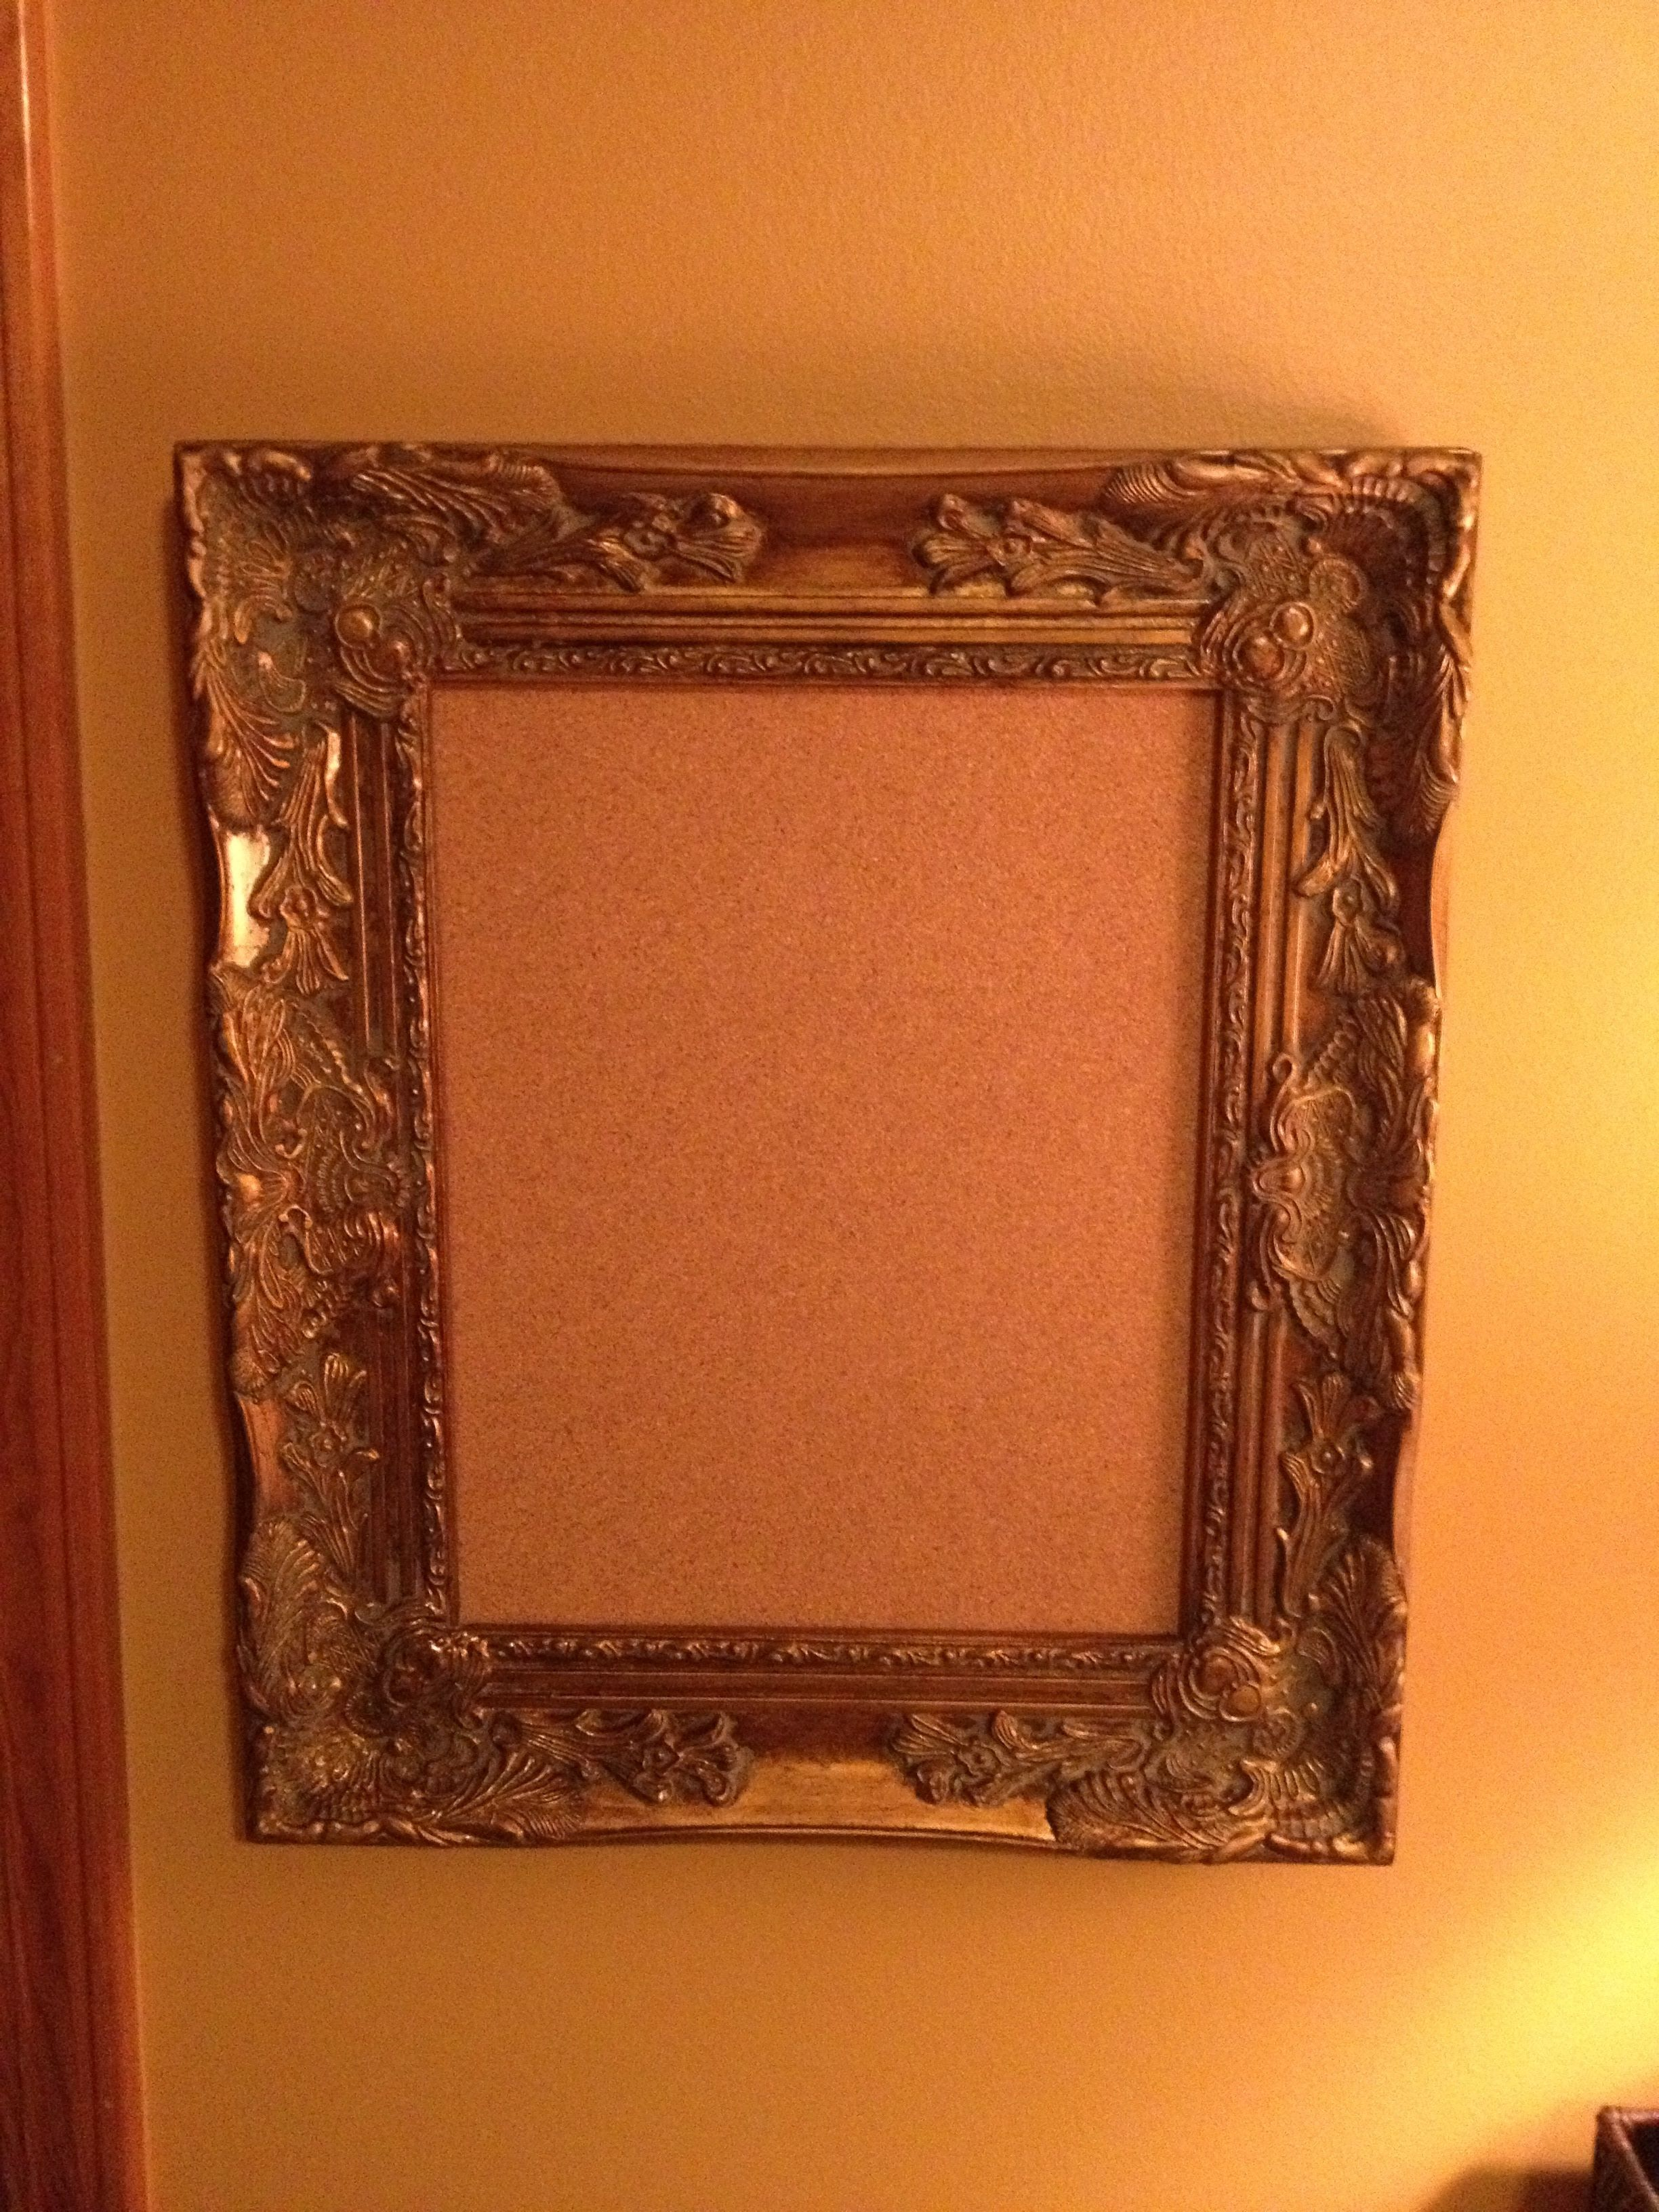 Get A Unframed Sheet Of Cork Board To Fit A